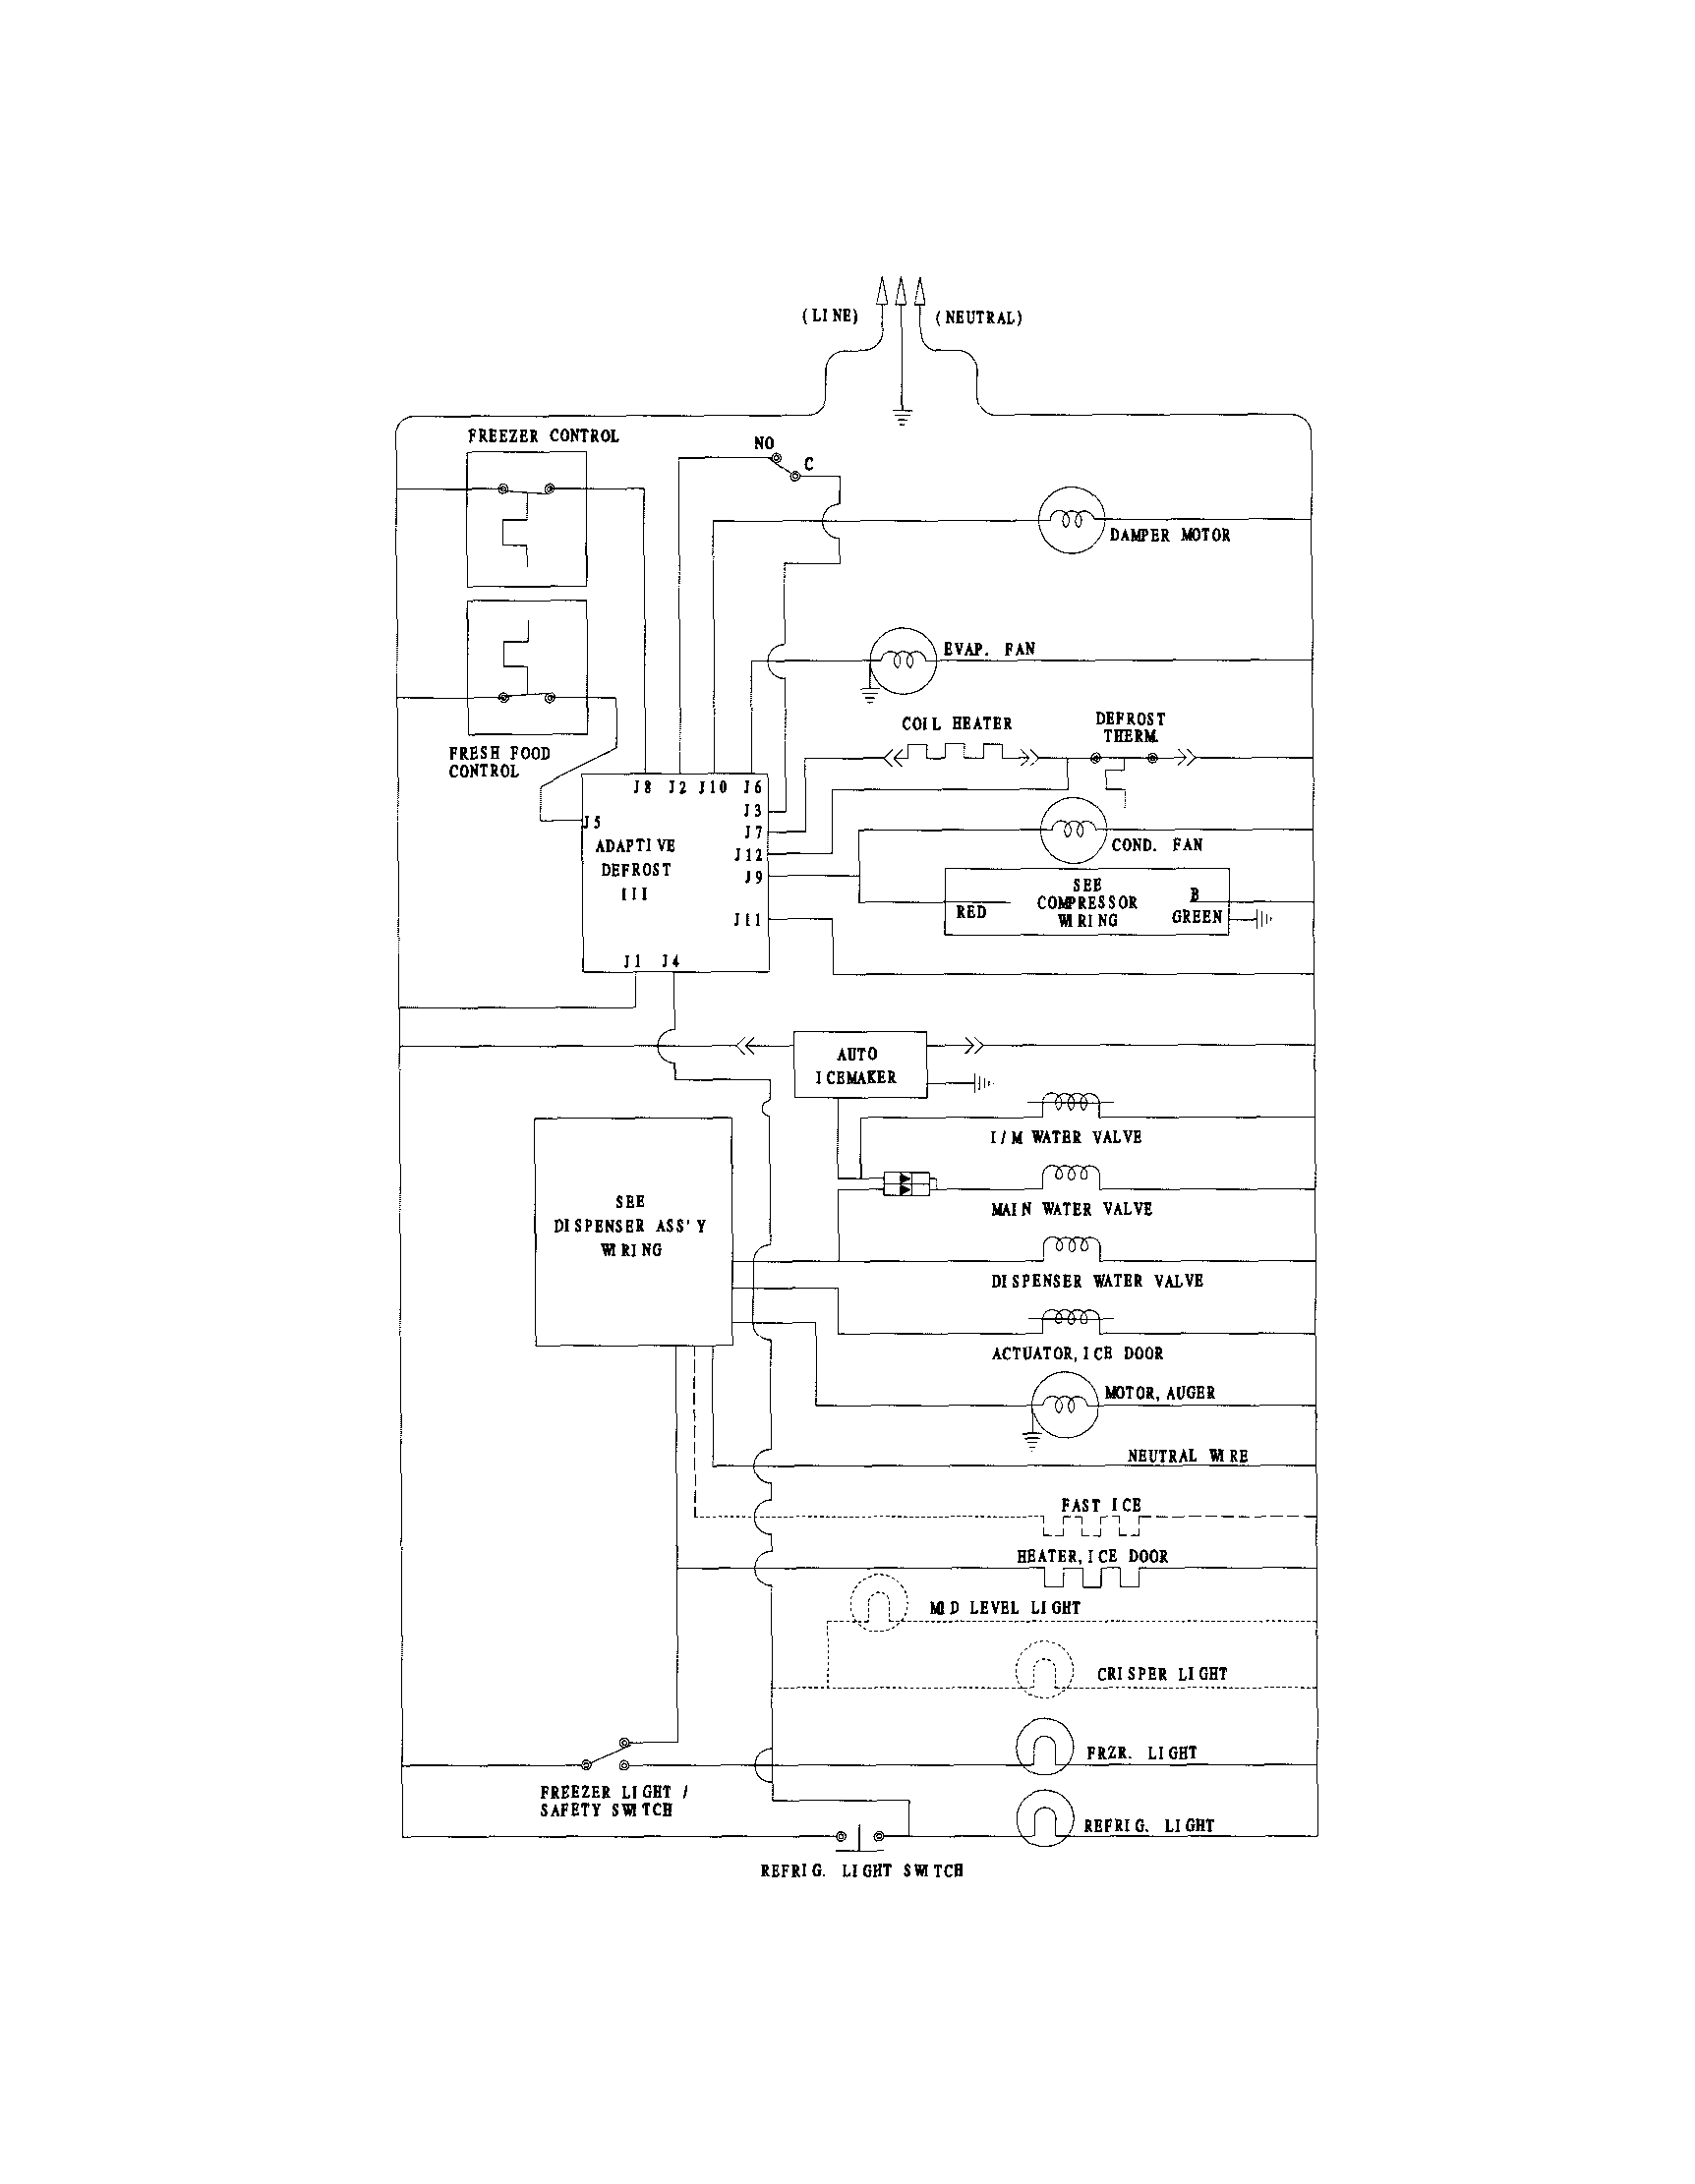 Wiring Diagram For A Frigidaire Dryer from c.searspartsdirect.com